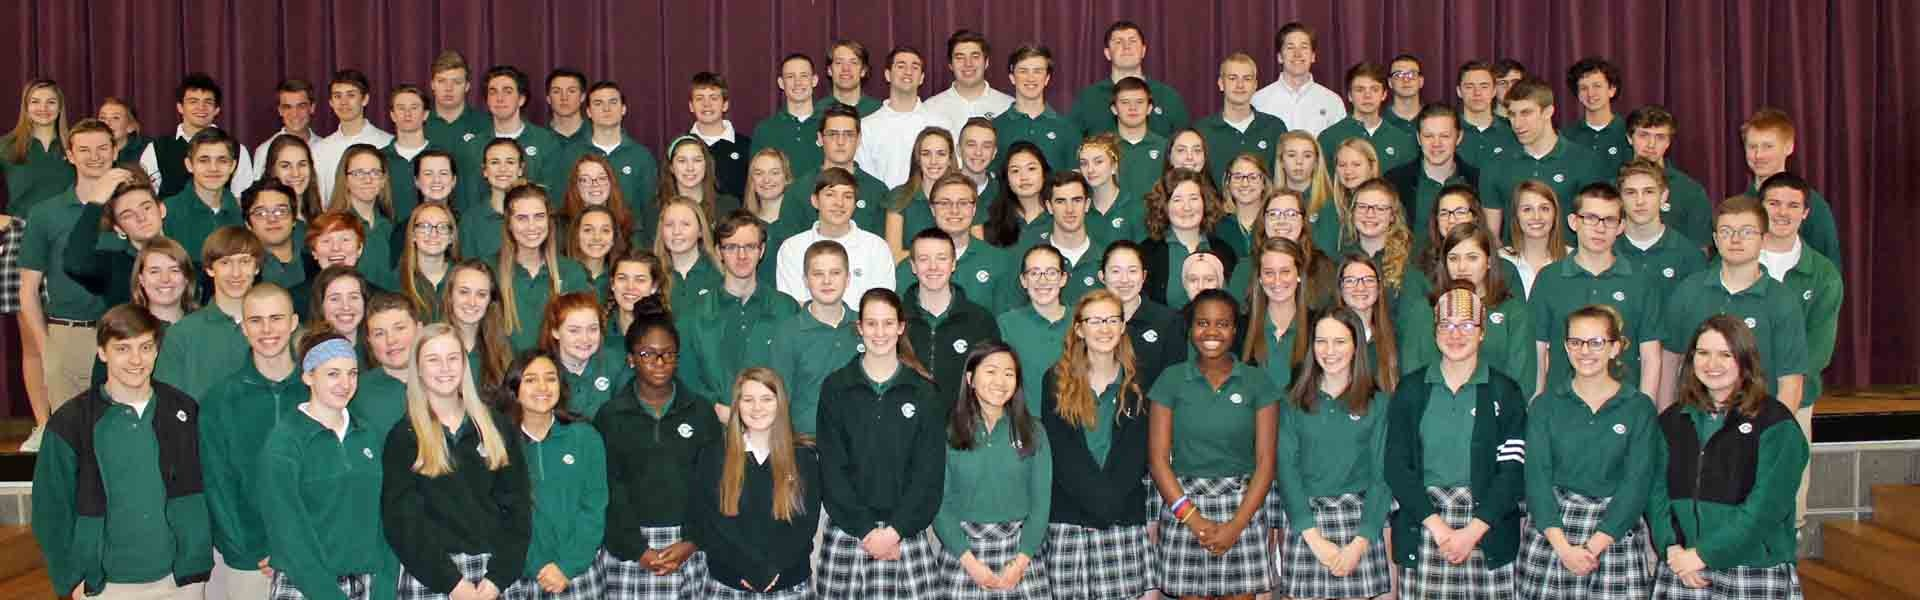 West Catholic Michigan USA Group Banner 2019